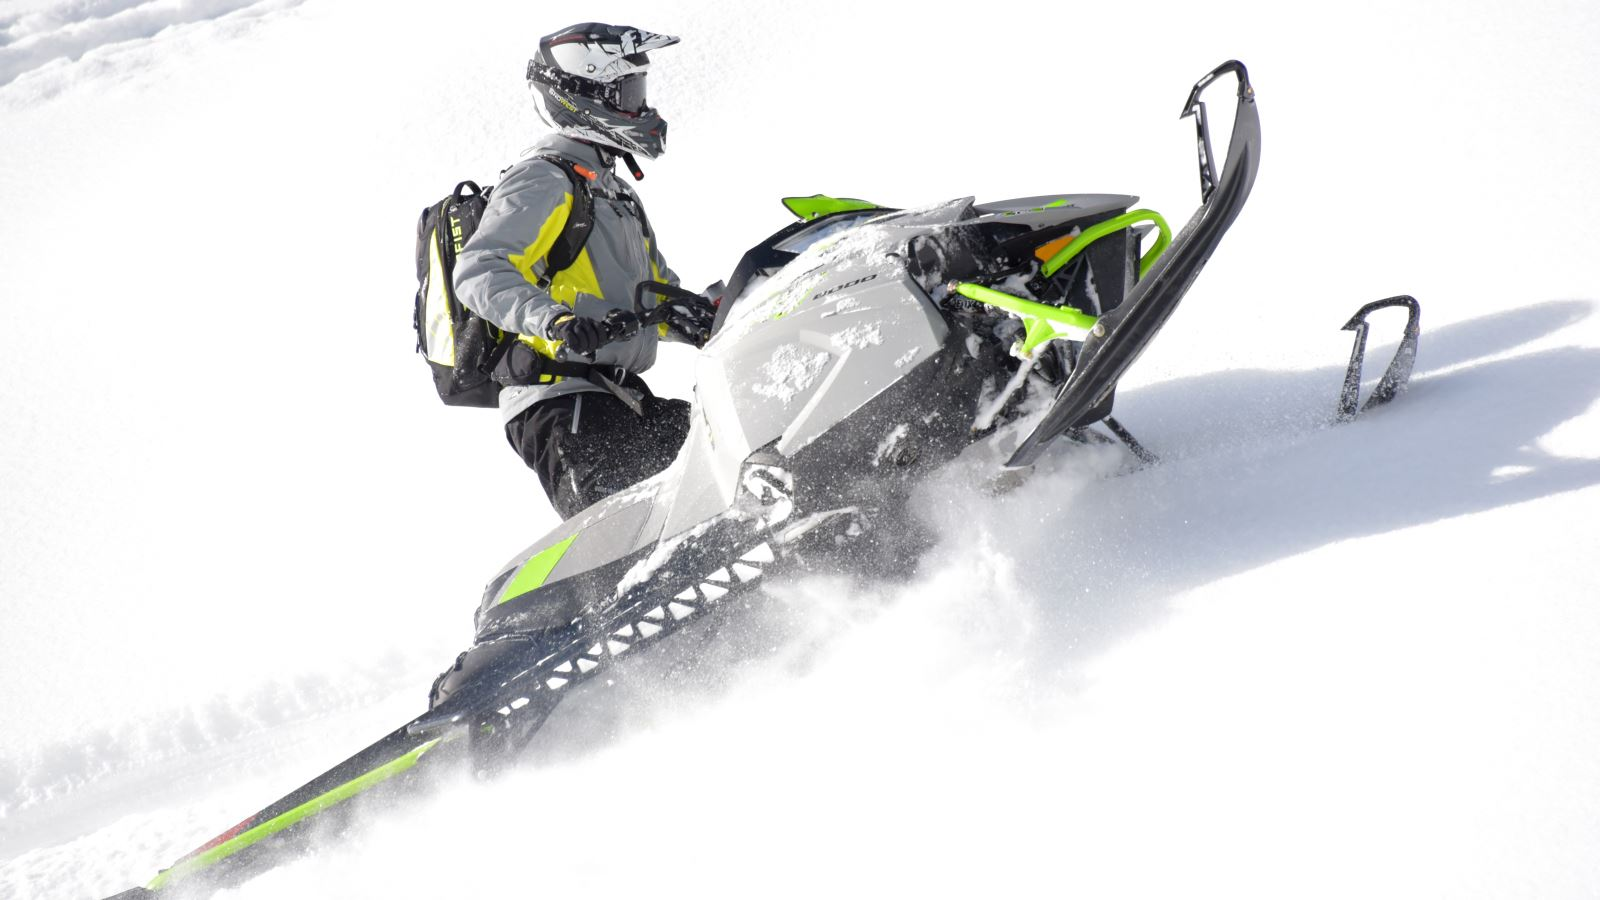 The Small Changes They Did On That Sled Completely Transformed How It Handled New 2018 Sno Pro Is No Diffe